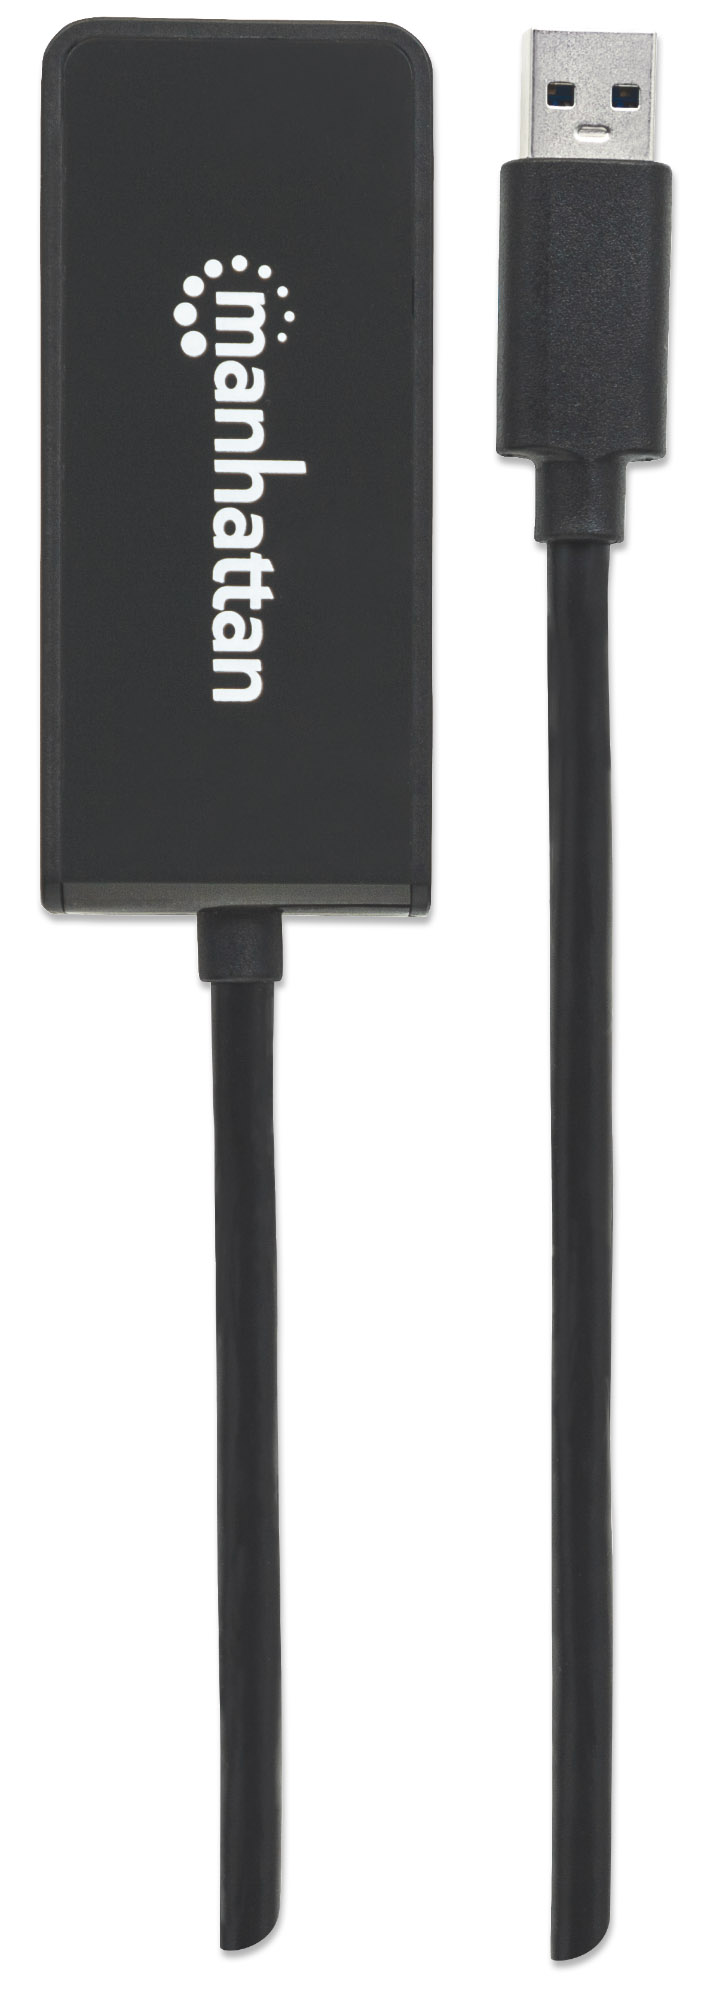 SuperSpeed USB 3.0 to HDMI Adapter